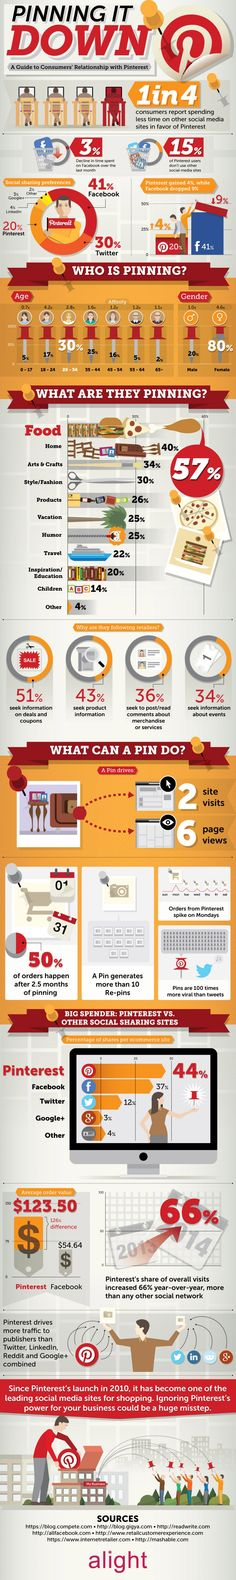 Pinning it Down: A Guide to Consumers' Relationship with #Pinterest